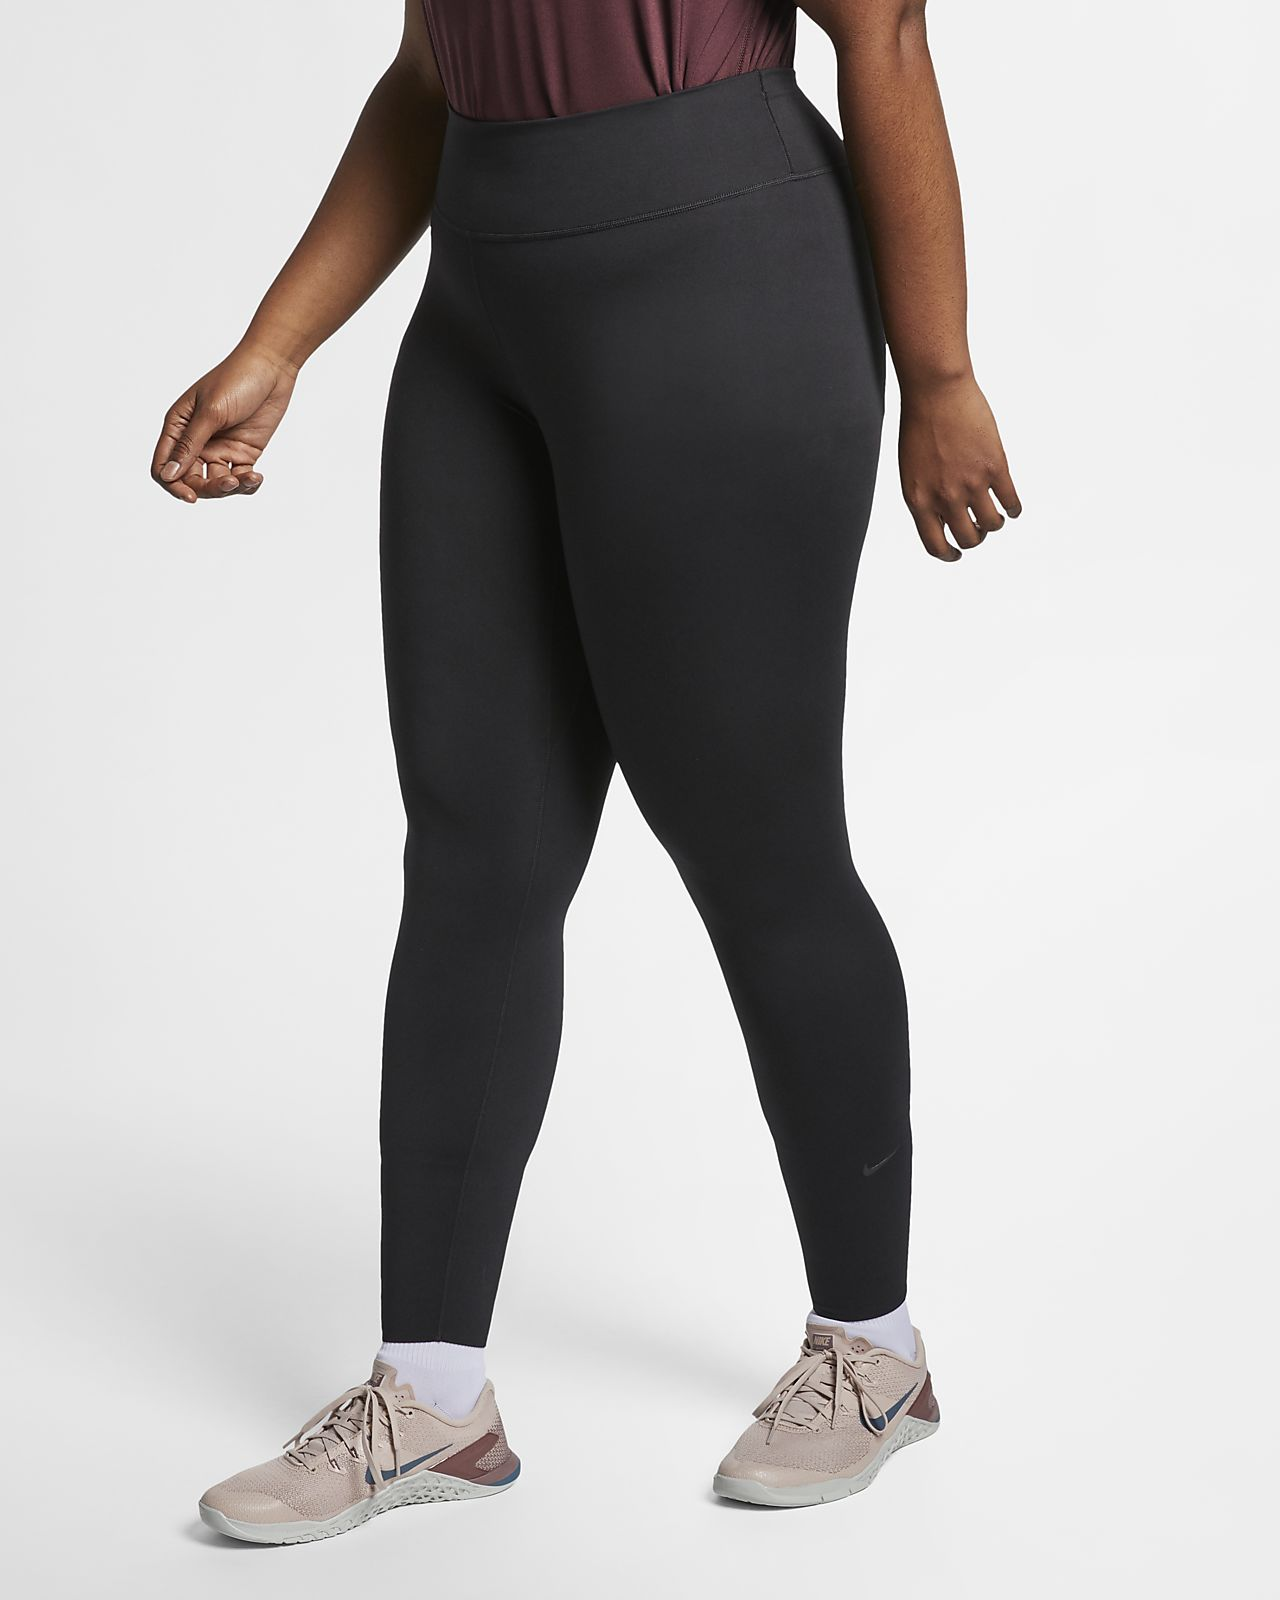 Luxe MatenNl Luxe One Nike One Nike Damestightsgrote Nike Damestightsgrote One MatenNl Luxe iuOPXkZT